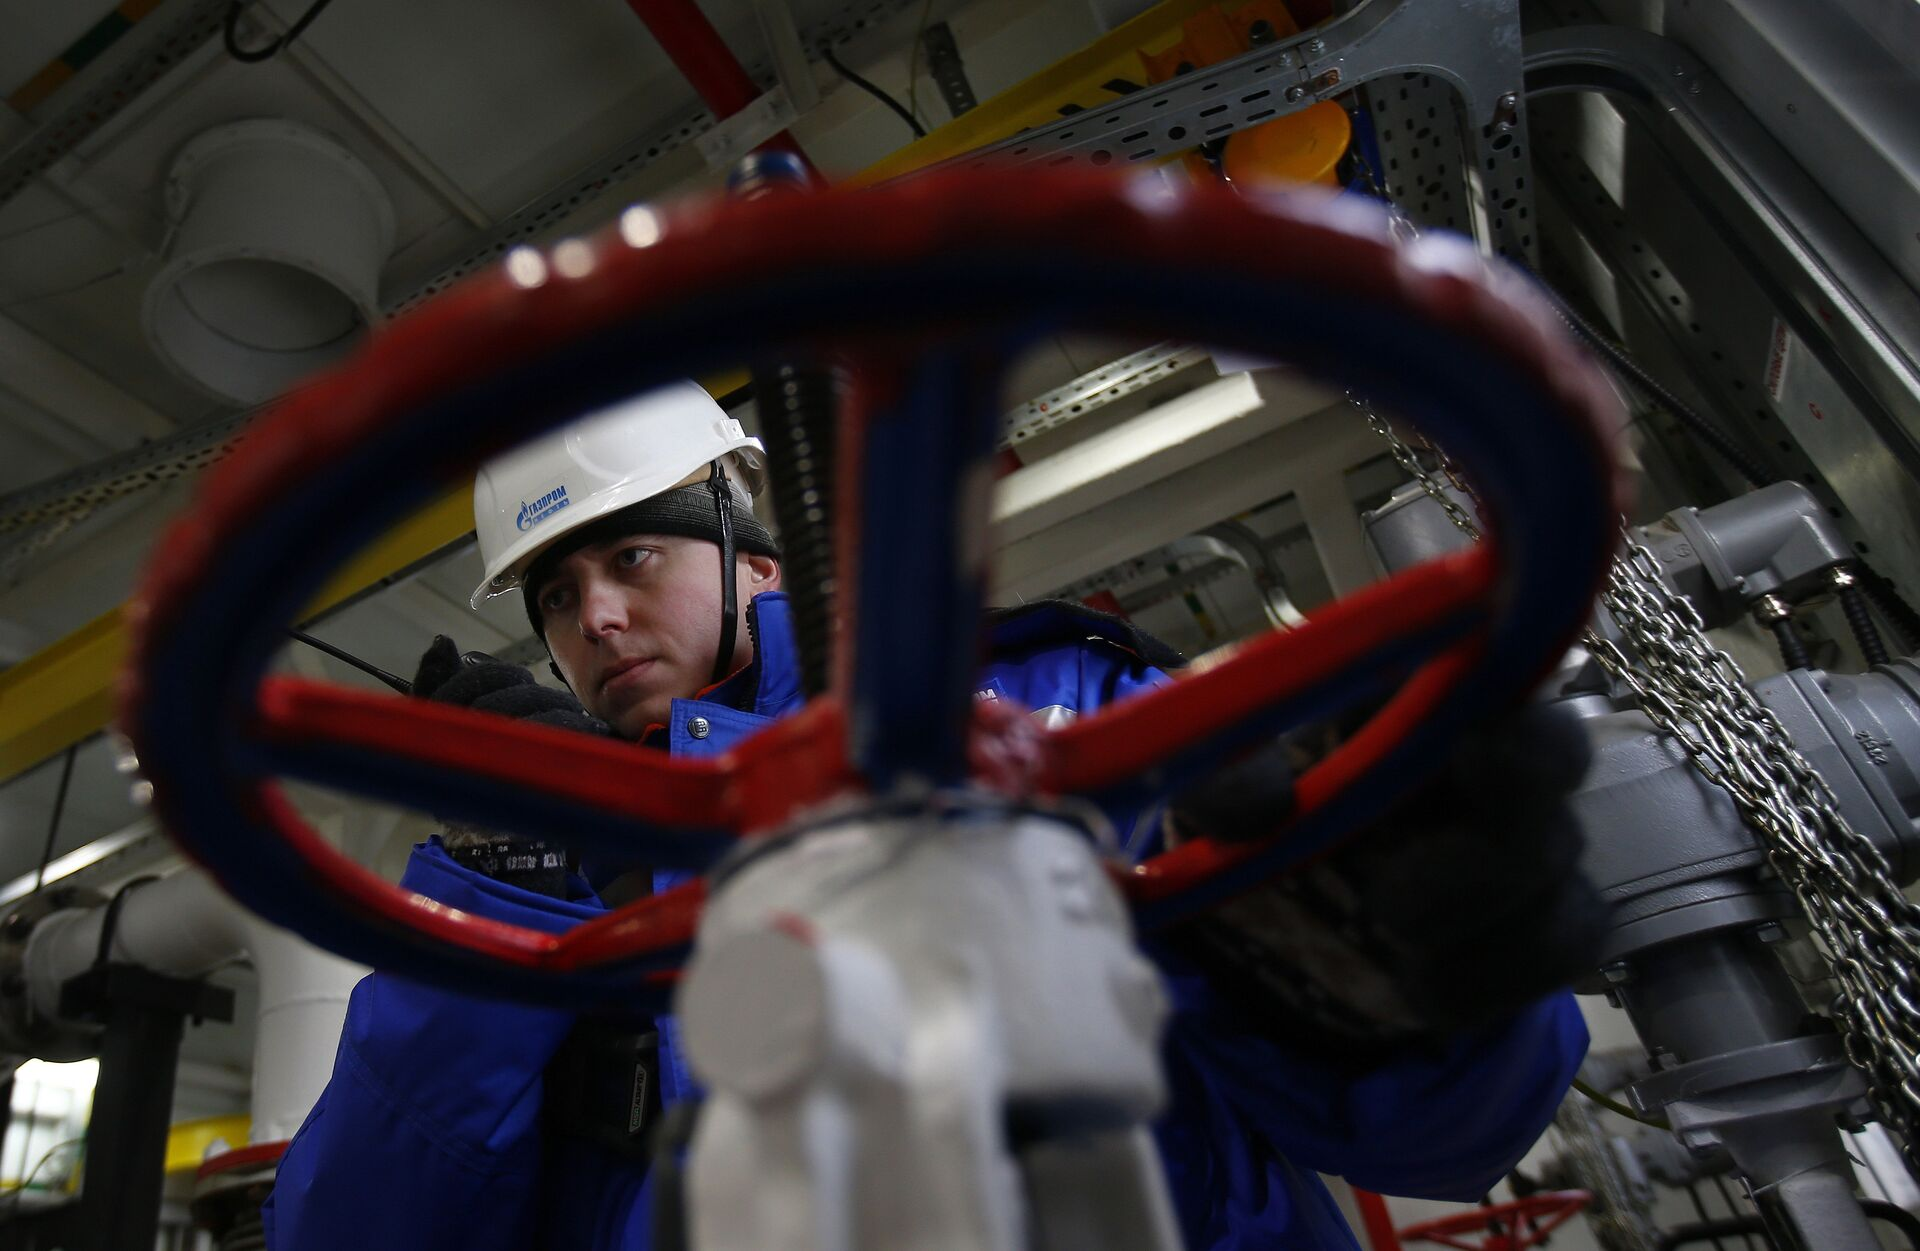 A worker of Russian gas and oil giant Gazprom works on February 18, 2015 in Novoprtovskoye oil and gas condensates oilfield at Cape Kamenny in the Gulf of Ob shore line in the south-east of a peninsular in the Yamalo-Nenets Autonomous District, 250 km north of the town of Nadym, northern Russia - Sputnik International, 1920, 23.09.2021